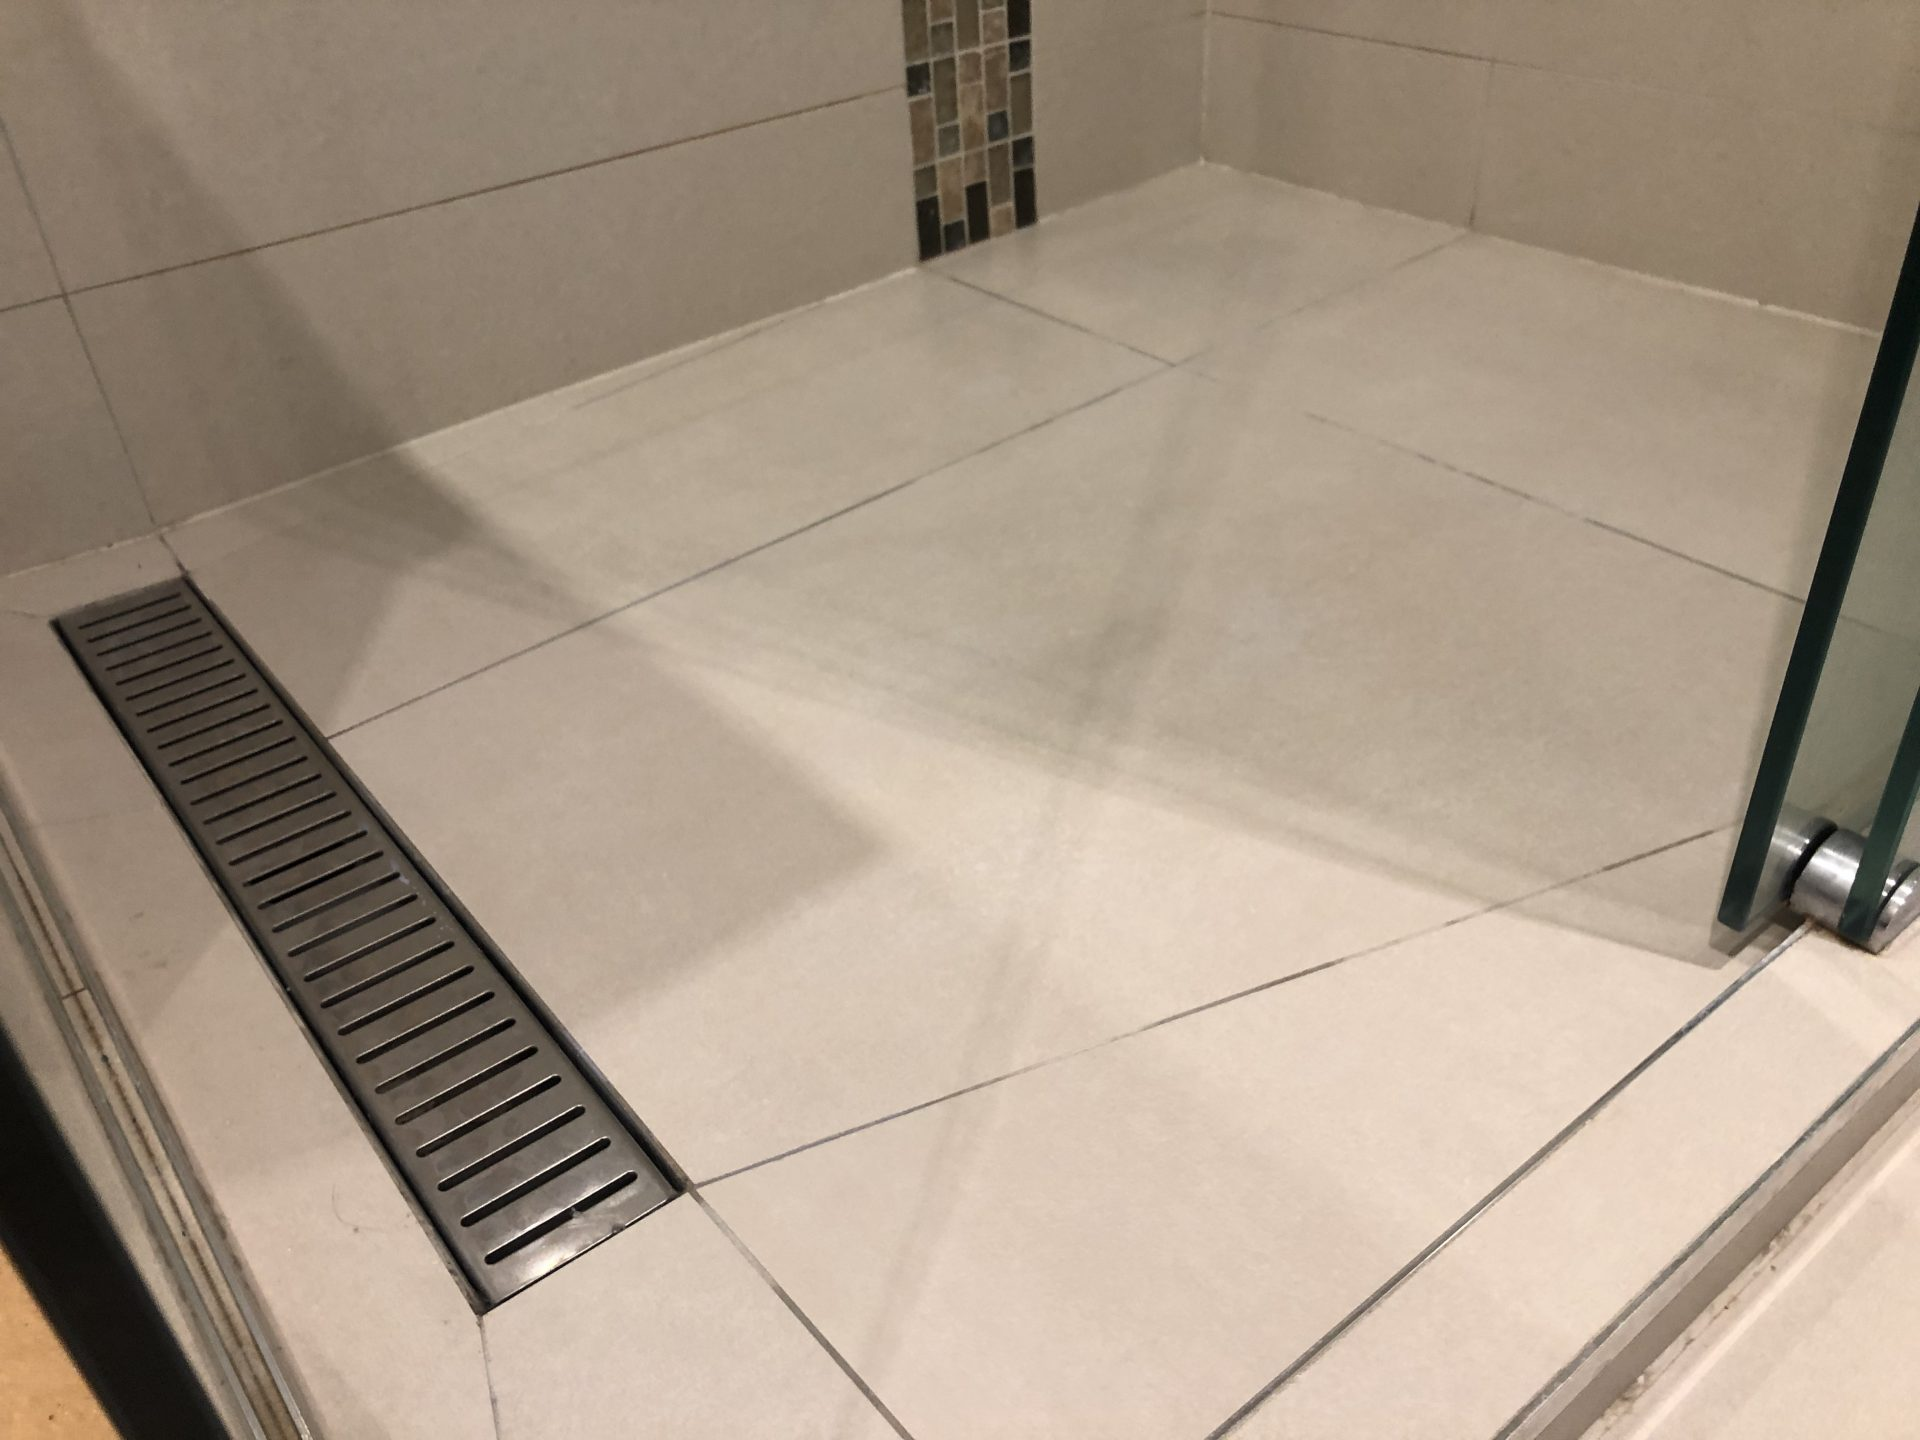 Non-Slip Tile coating